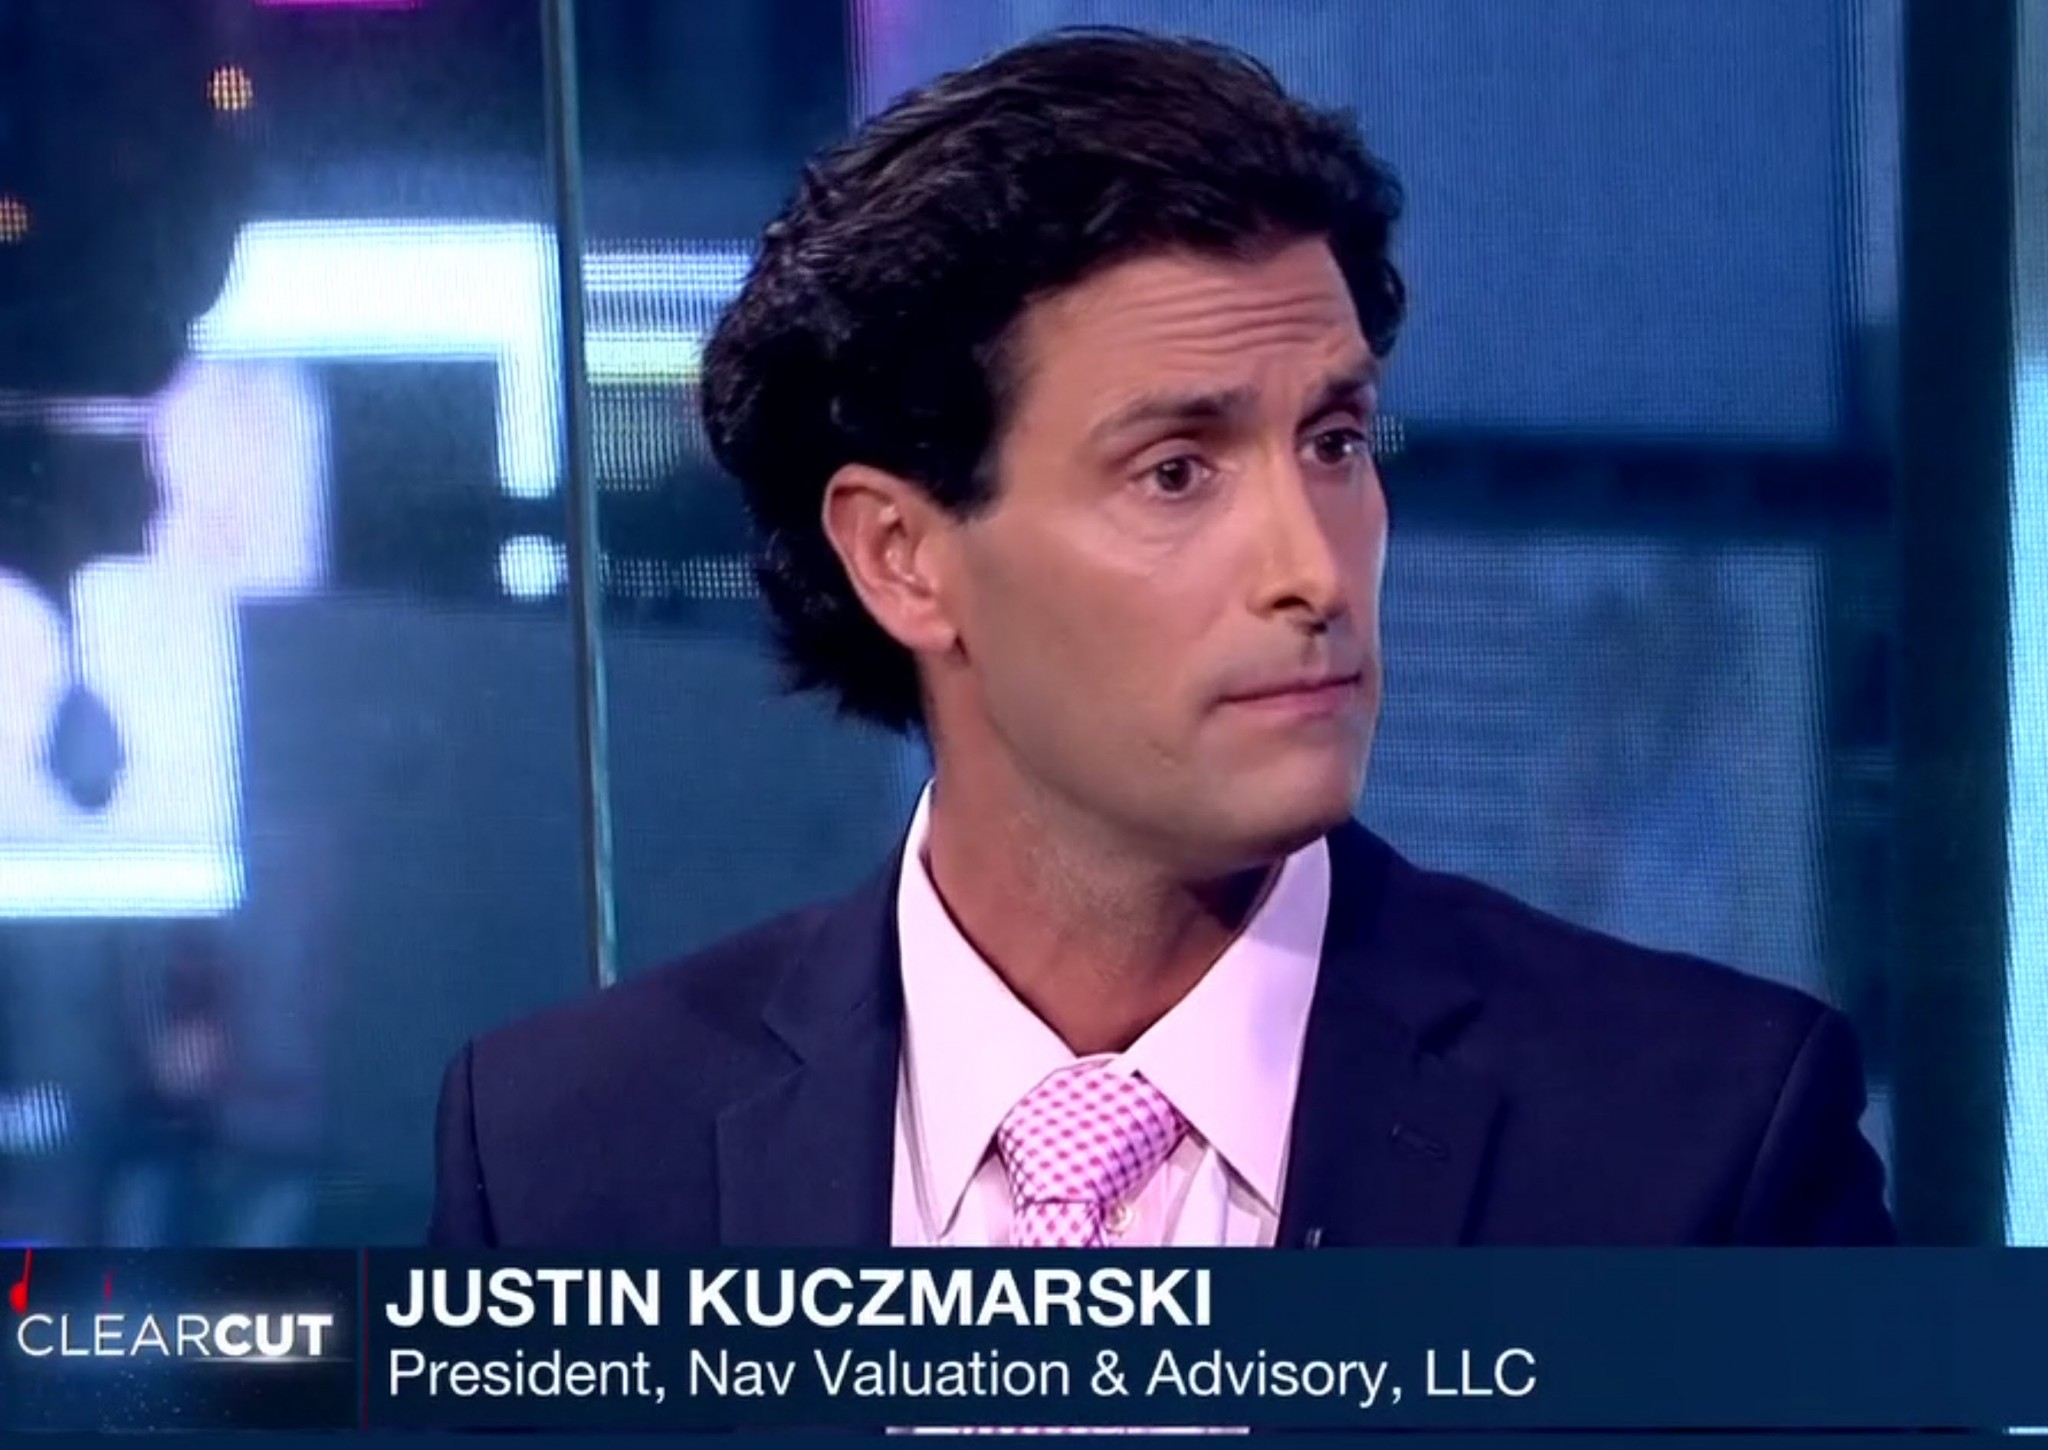 Justin Kuczmarski, MBA, CPA, CVA, ABV, CIRA, CFF - President of NAV Valuation & Advisory LLC